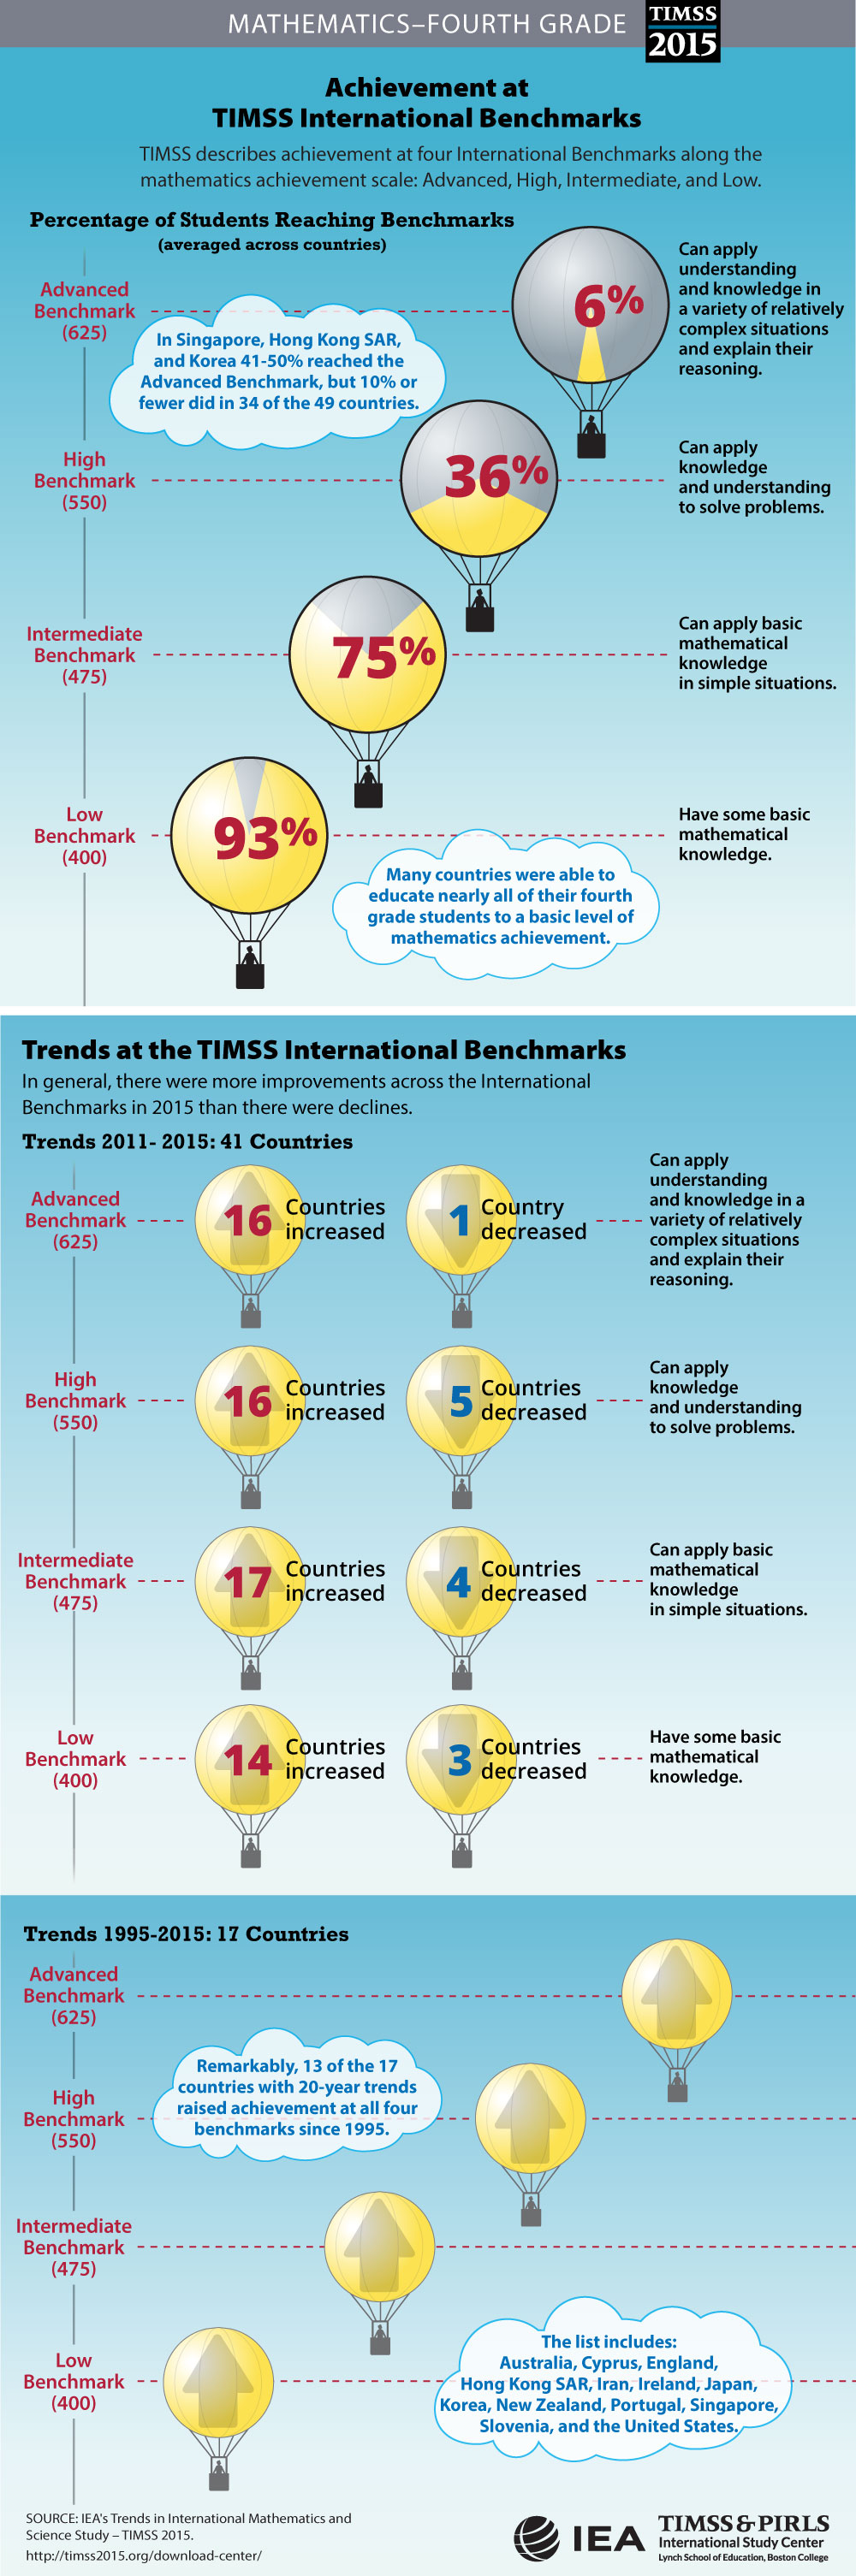 Performance at International Benchmarks (G4) Infographic